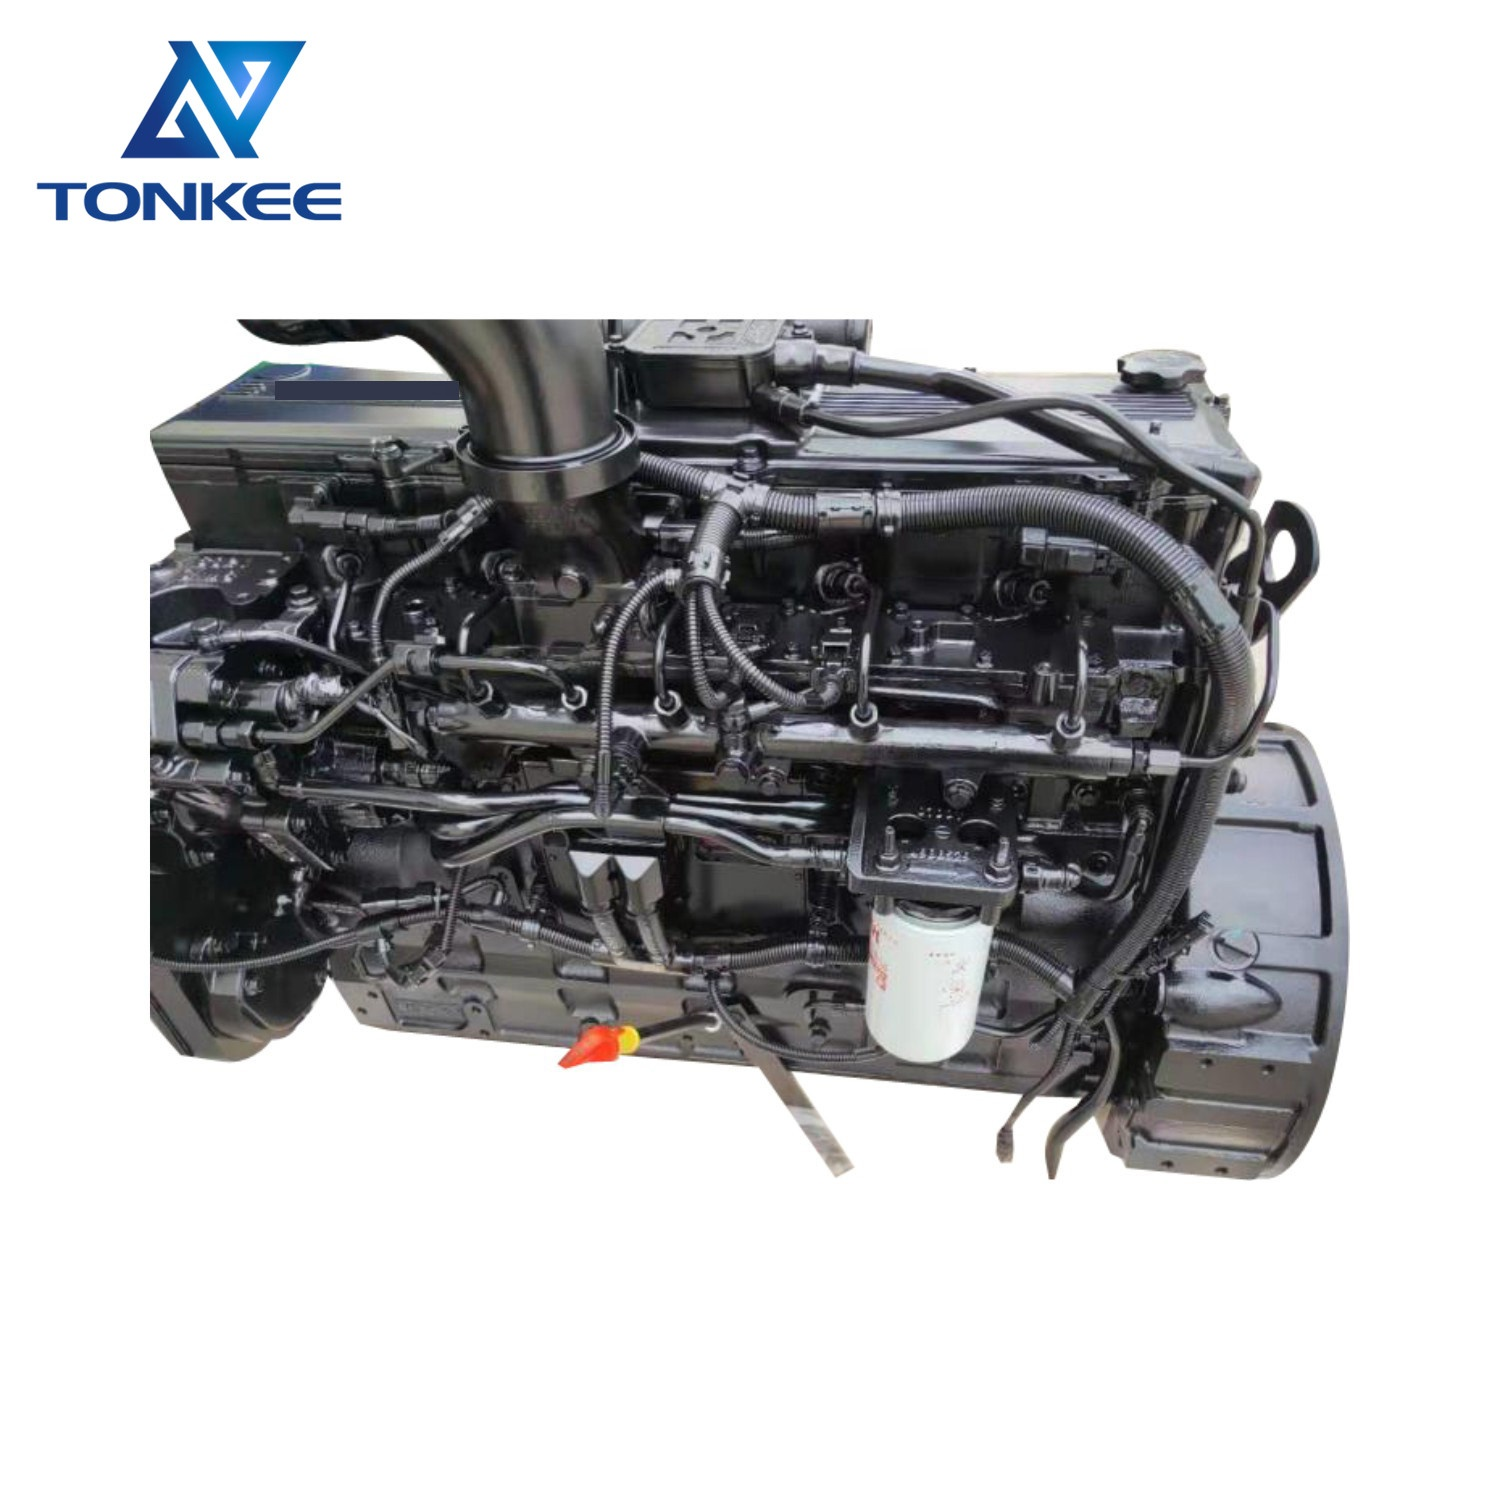 SAA6D114E-3 6D114-3 complete diesel engine assy PC300-8 PC350-8 PC360-8 excavator whole diesel engine assembly with 4933120 (2).jpg